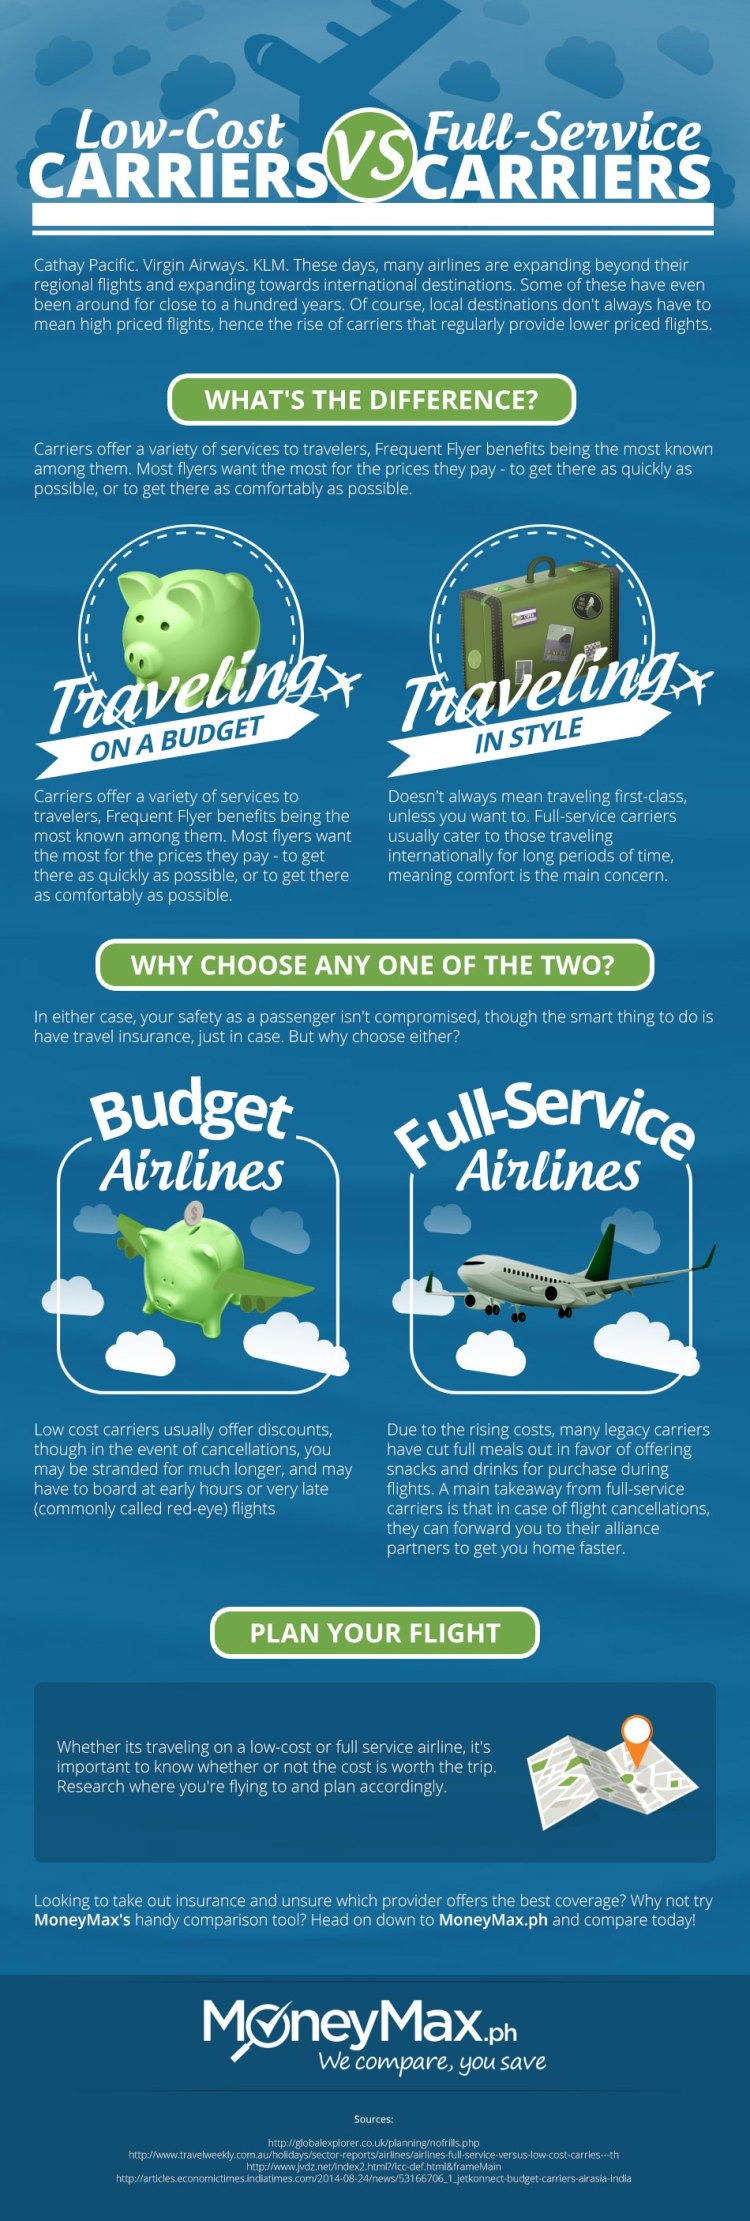 Budget Airlines vs Full Service